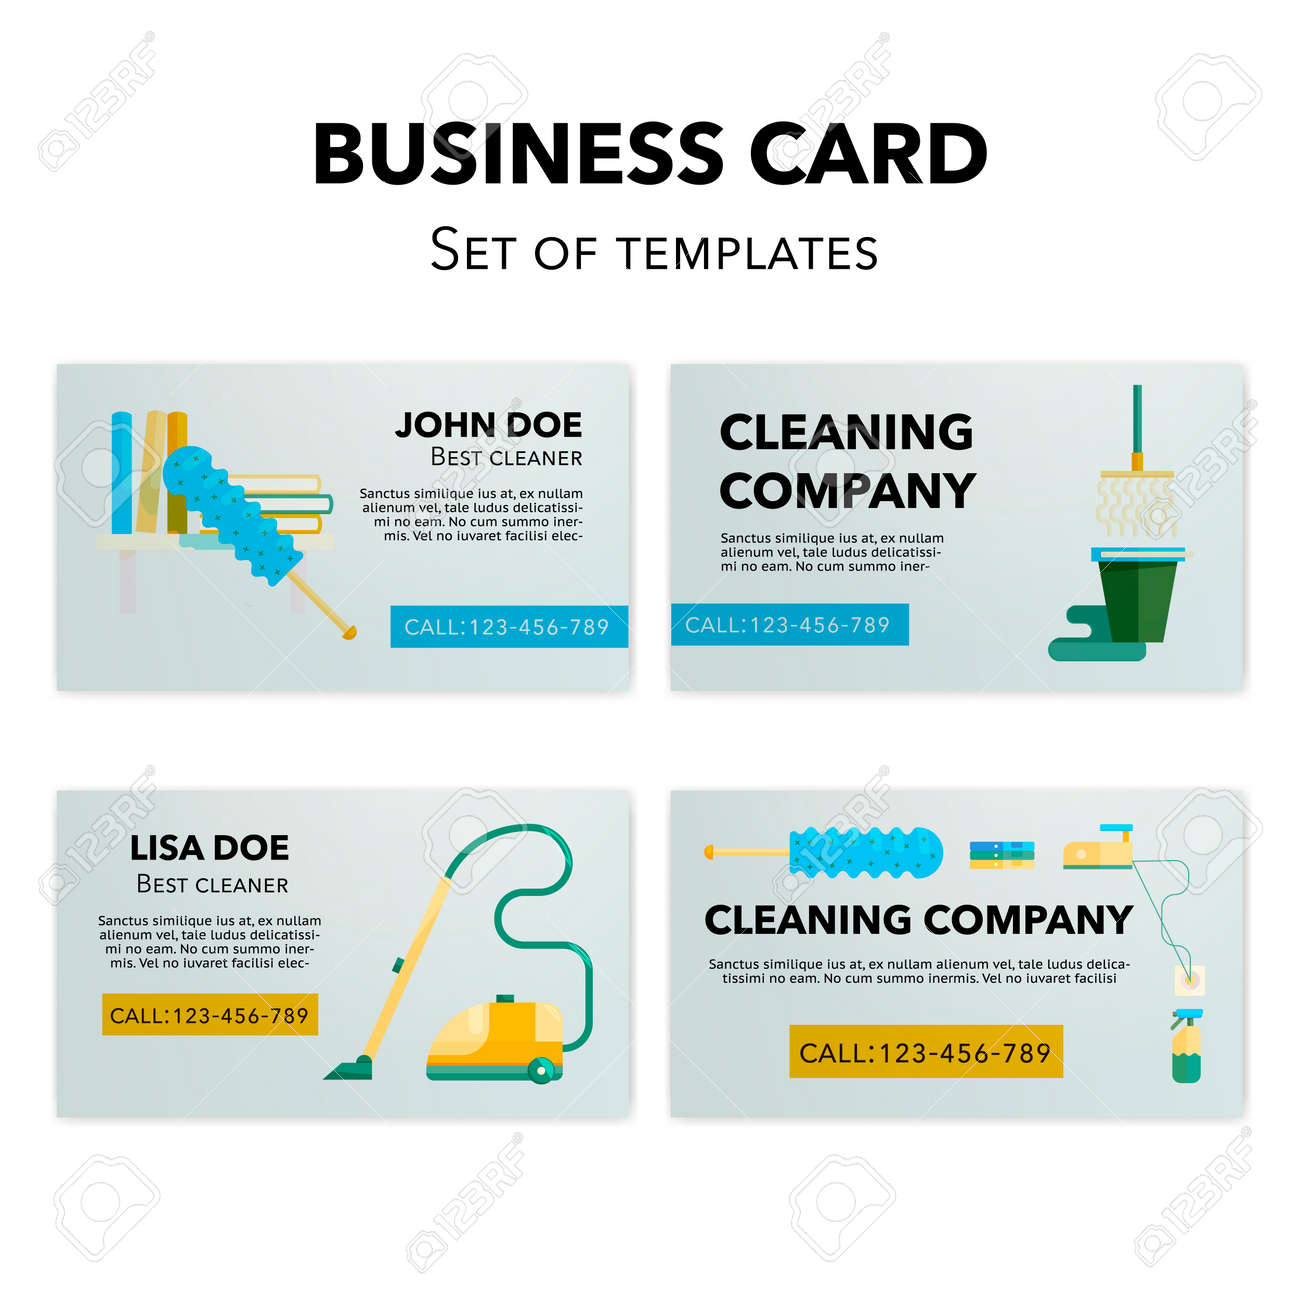 Cleaning business cards templates set flat cleaning appliances cleaning business cards templates set flat cleaning appliances concepts illustration stock vector 68695316 wajeb Choice Image